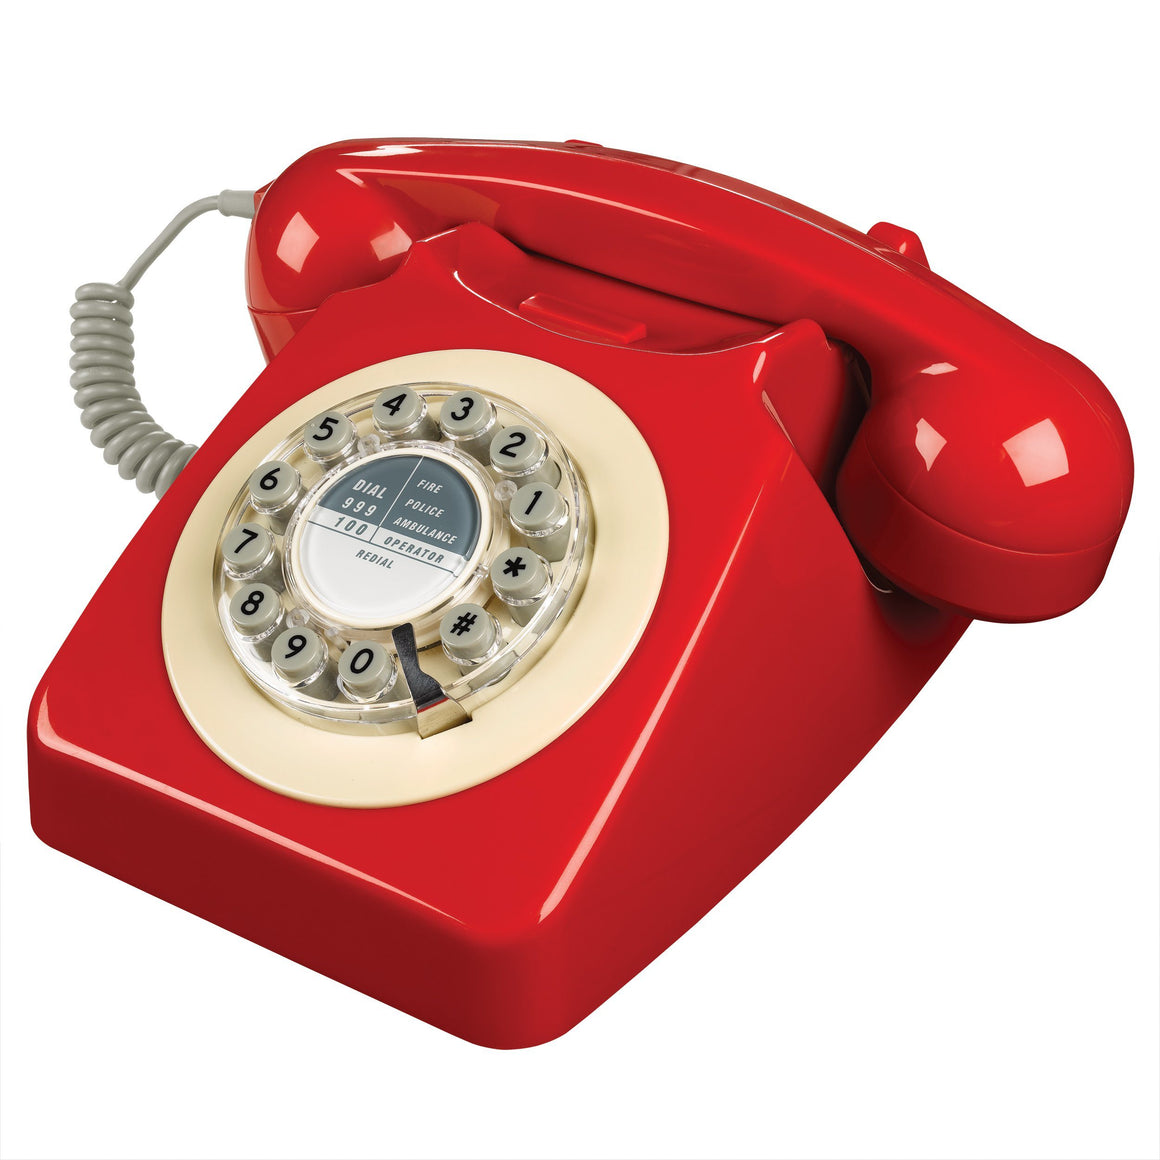 Red 746 Telephone Classic 1960's Design Telephone Bouchic